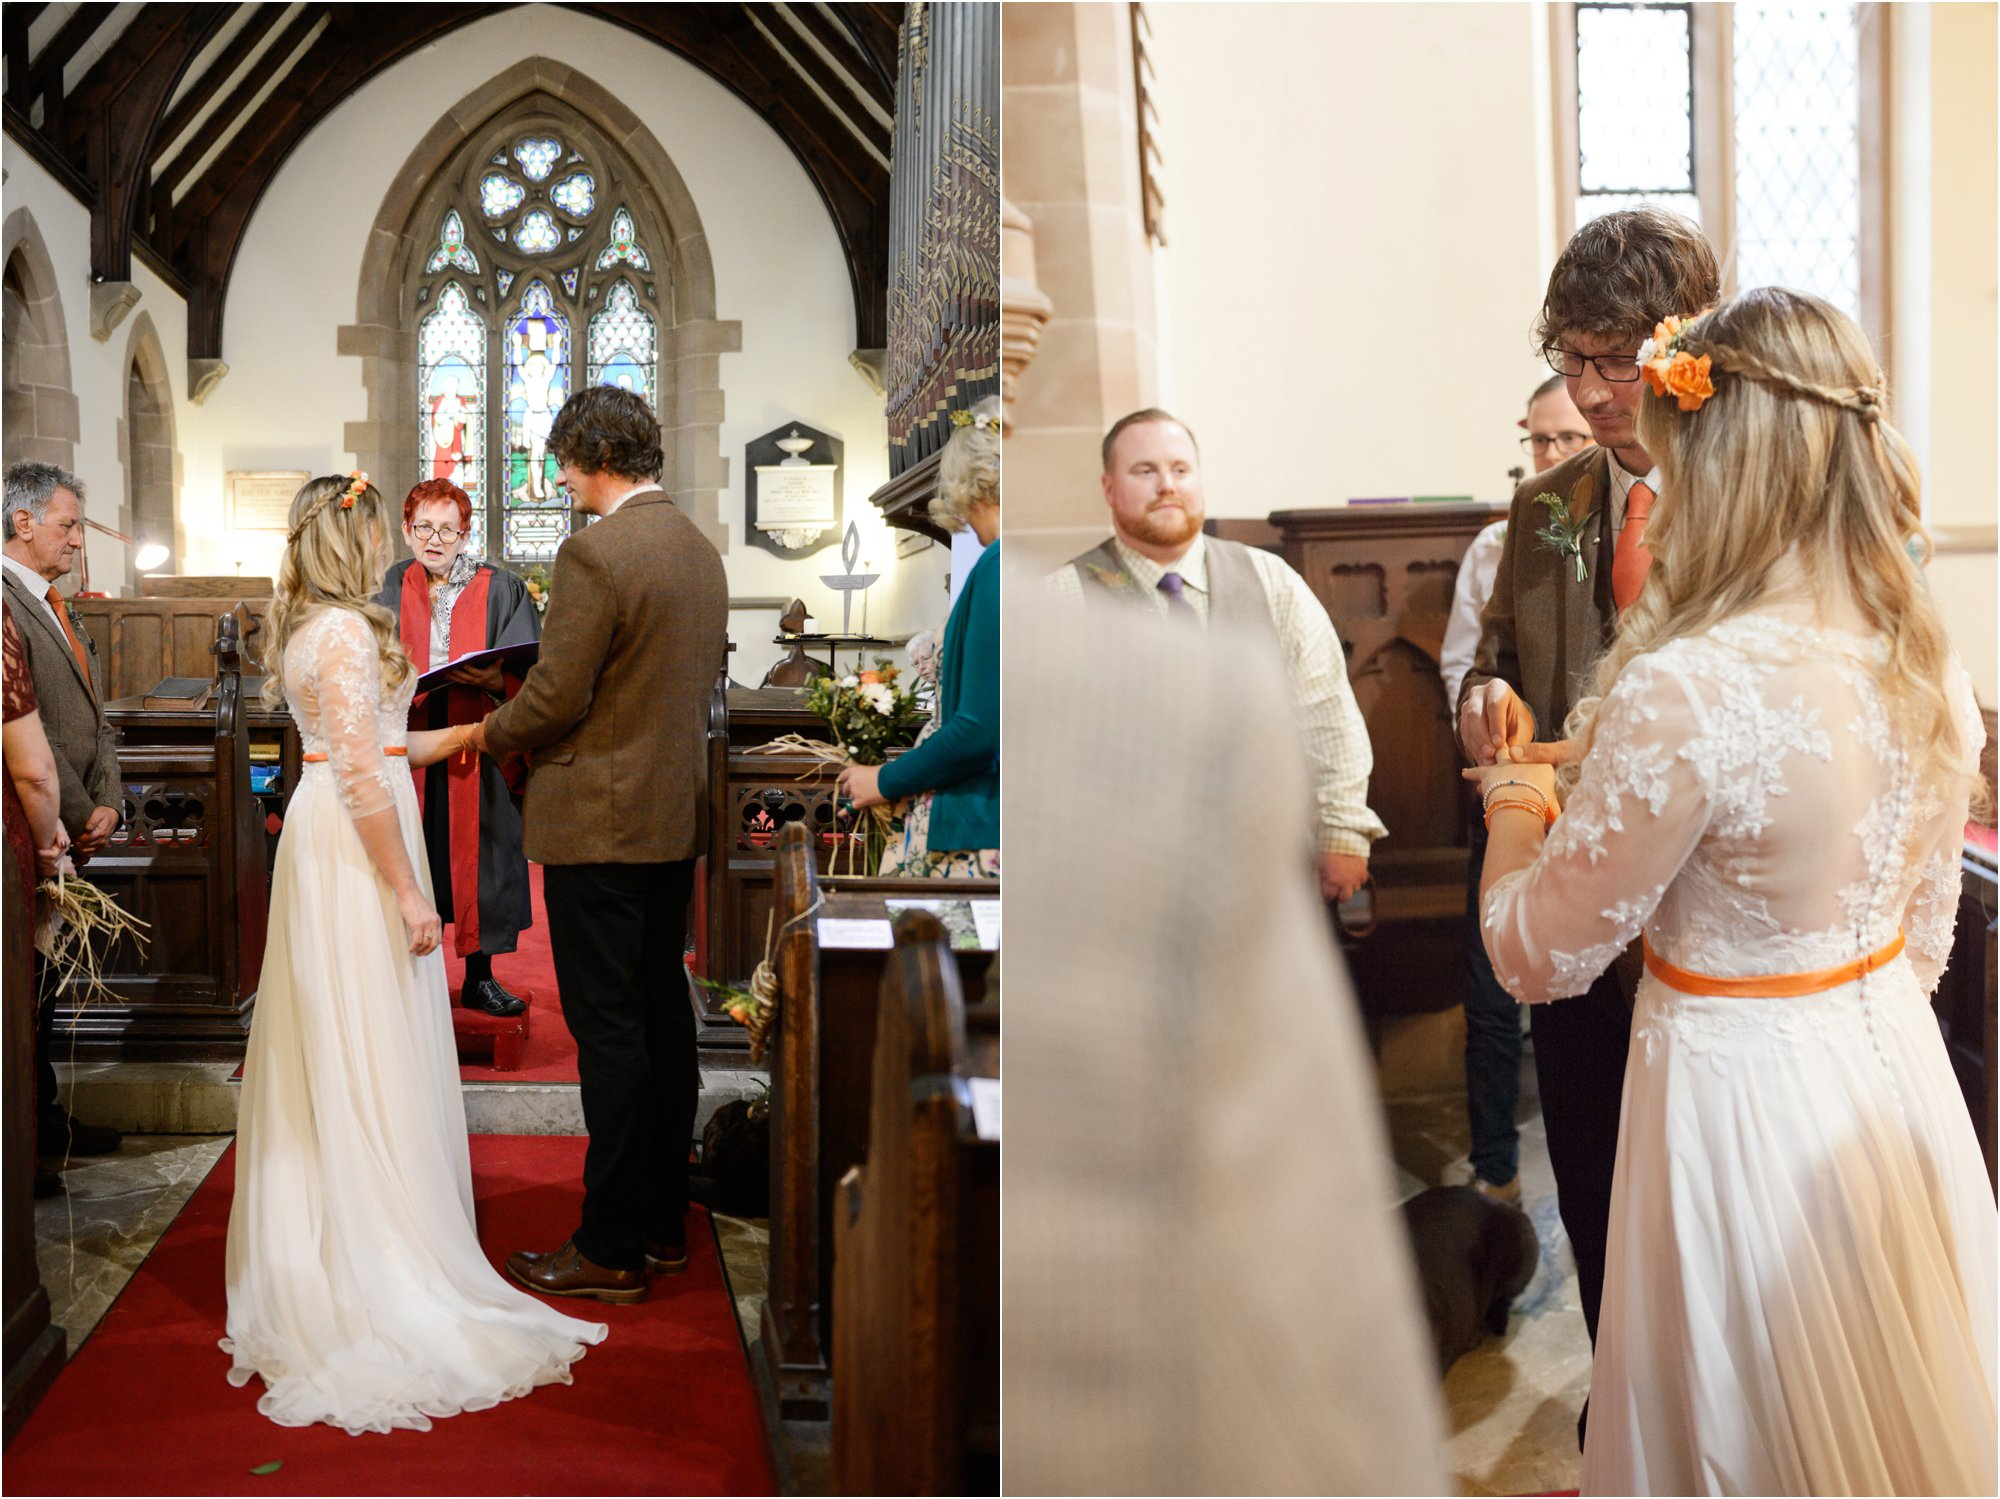 Styal_Wedding_Wilmslow_Cheshire_Autumn_Colourful_photography_0087.jpg